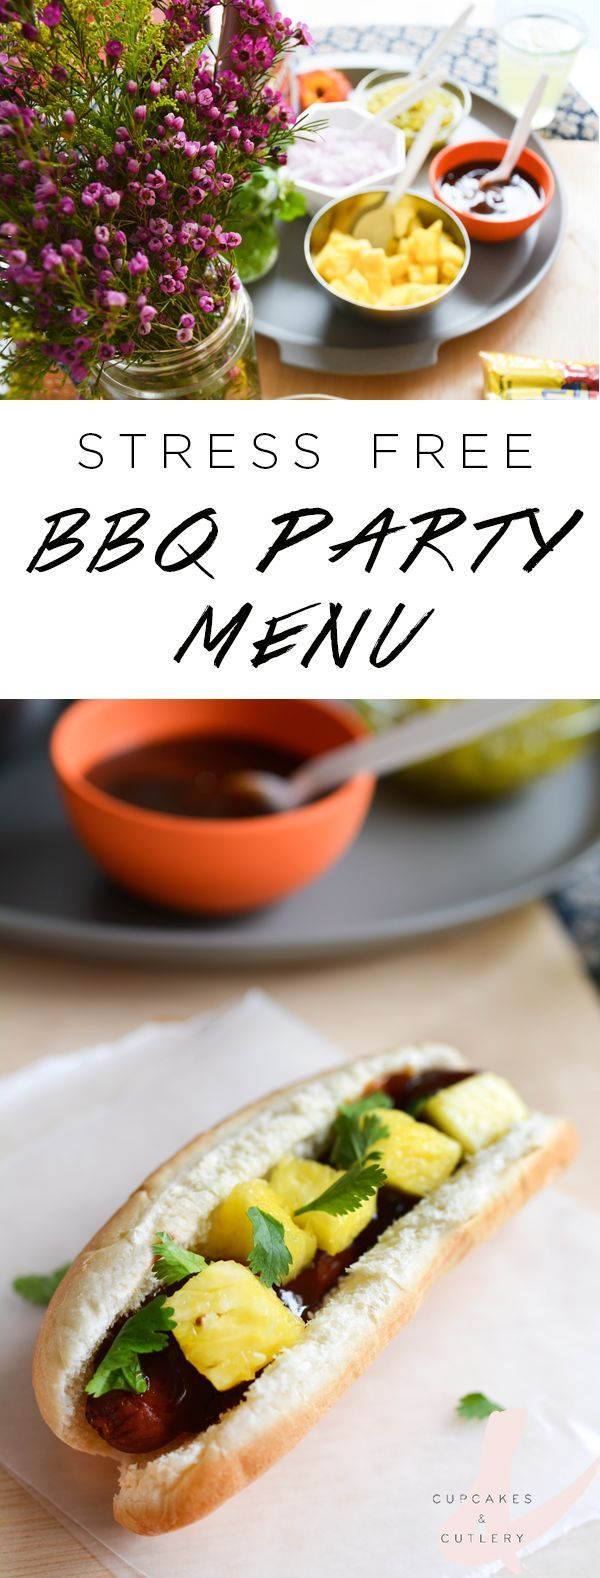 Attractive Gourmet Menu Ideas For Dinner Party Part - 10: BBQ Party Ideas